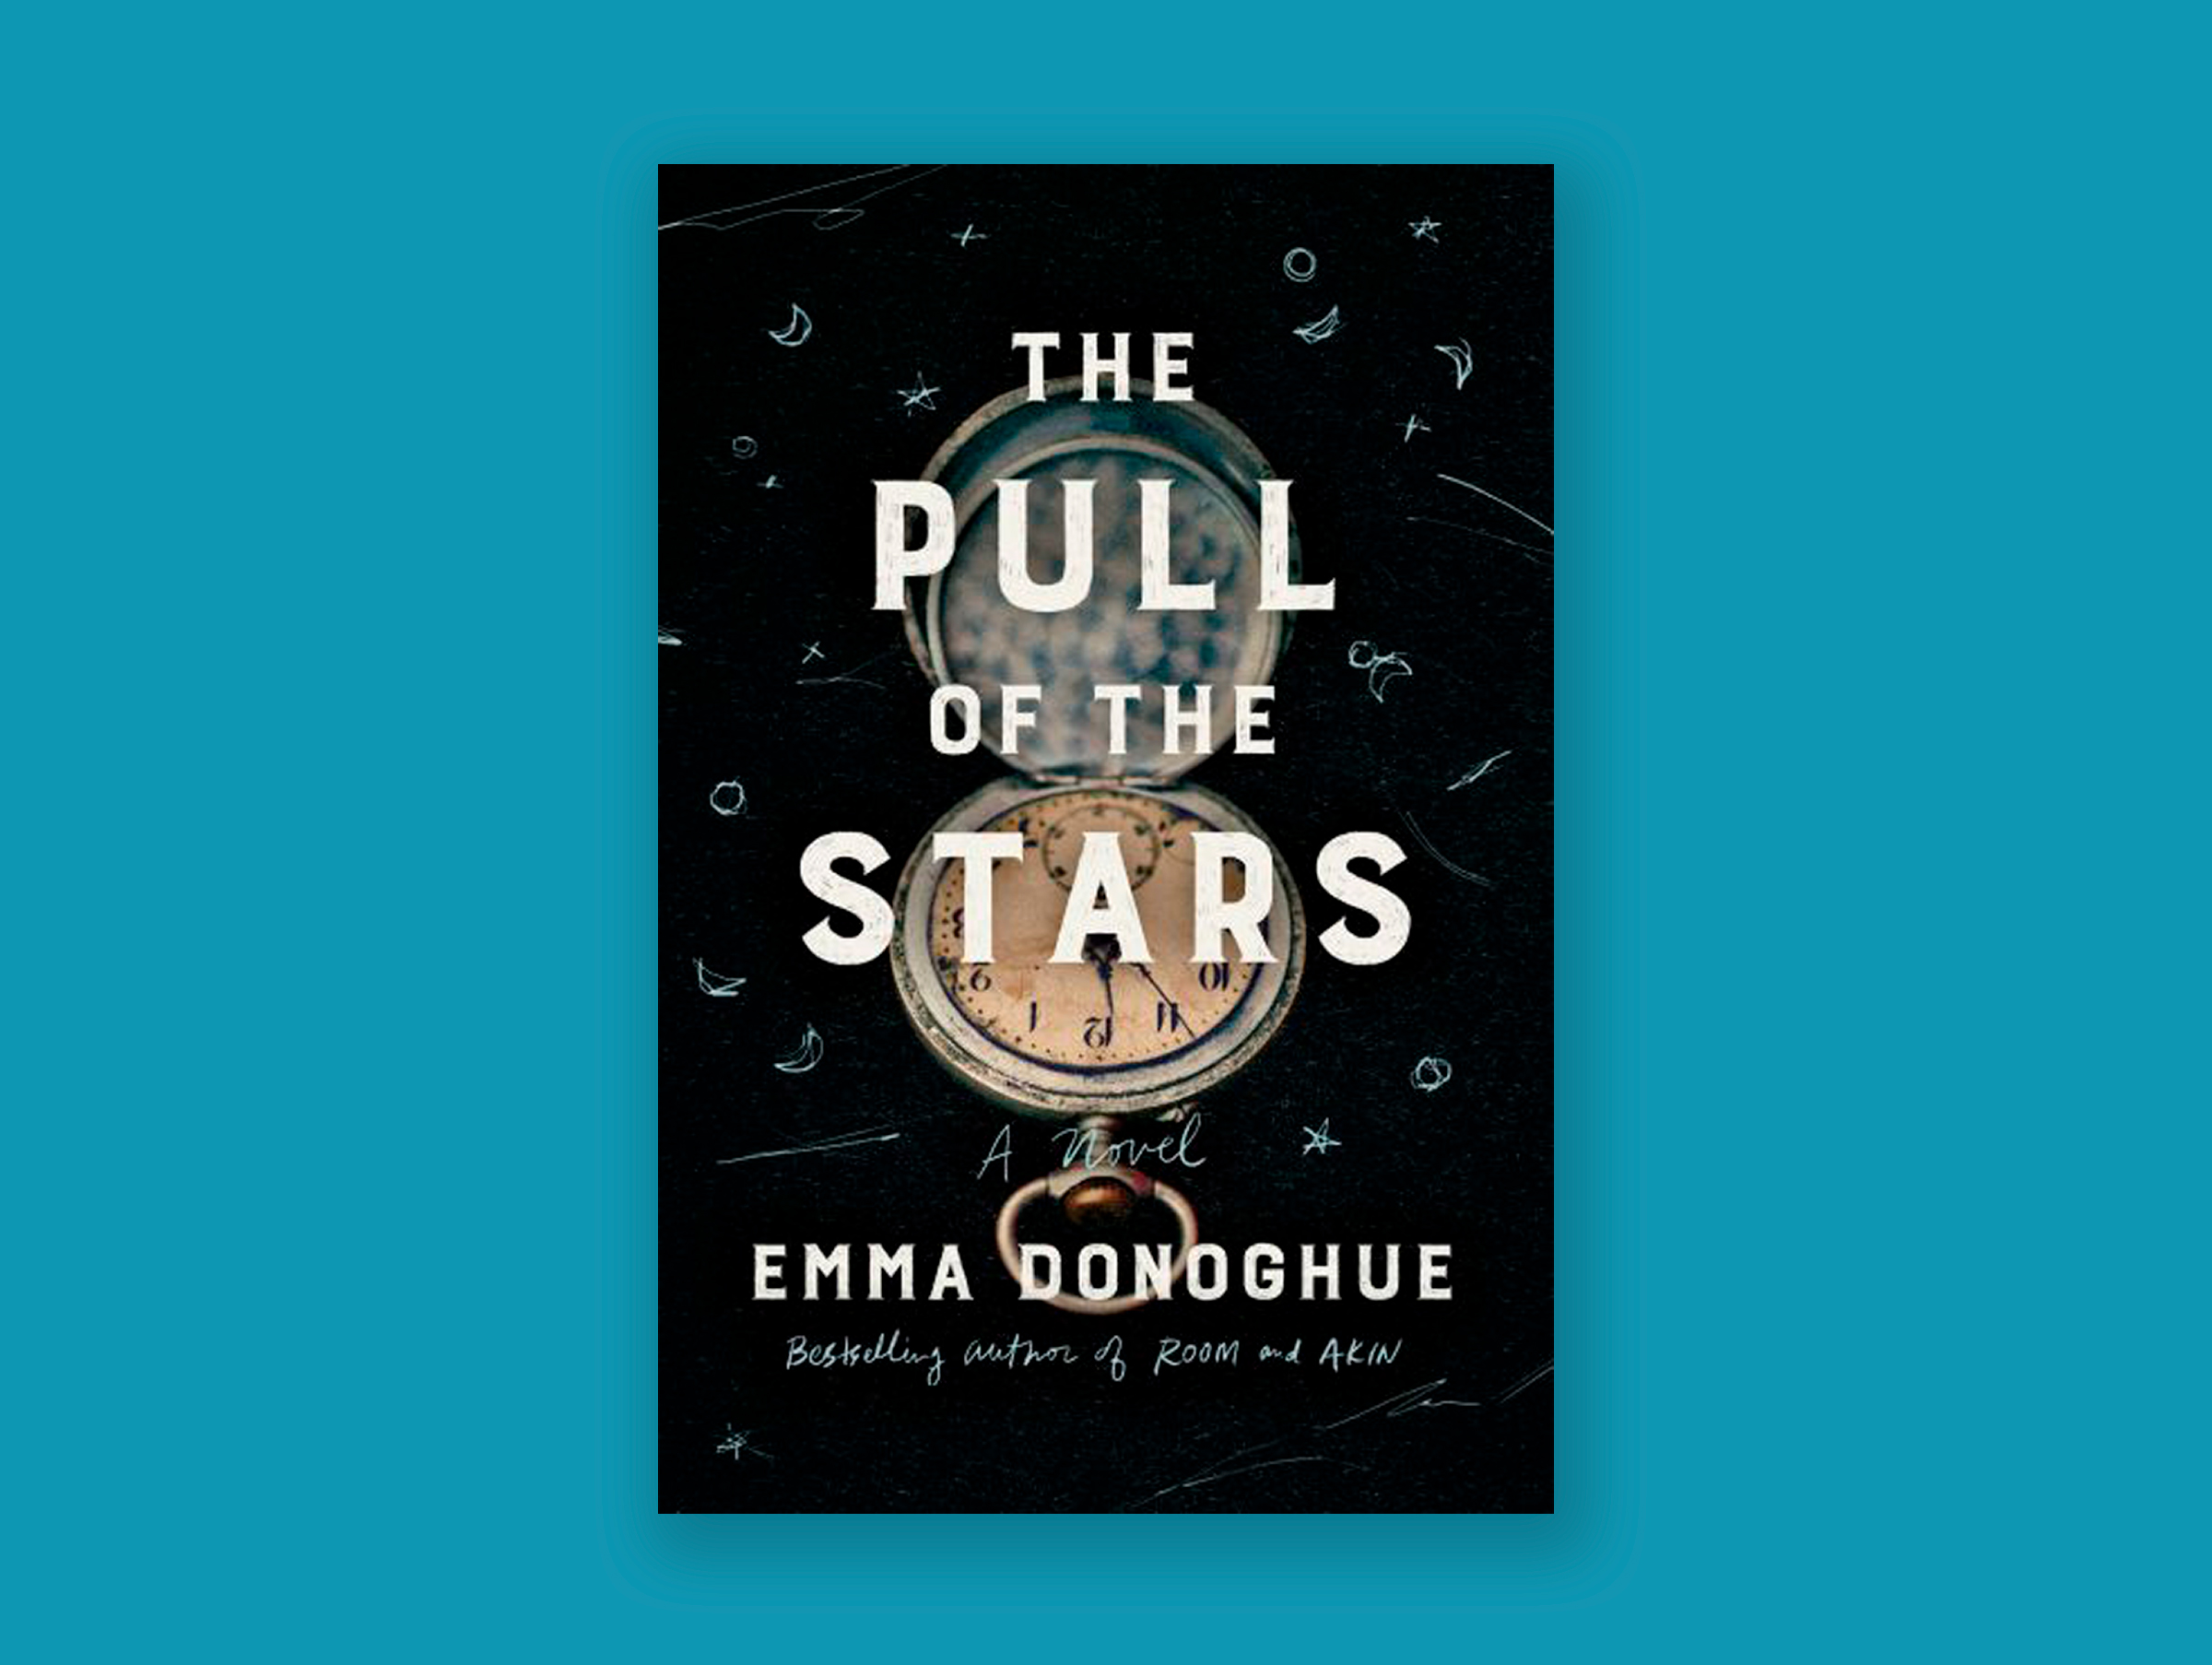 Donoghue began working on this novel, about the 1918 flu, long before the coronavirus pandemic